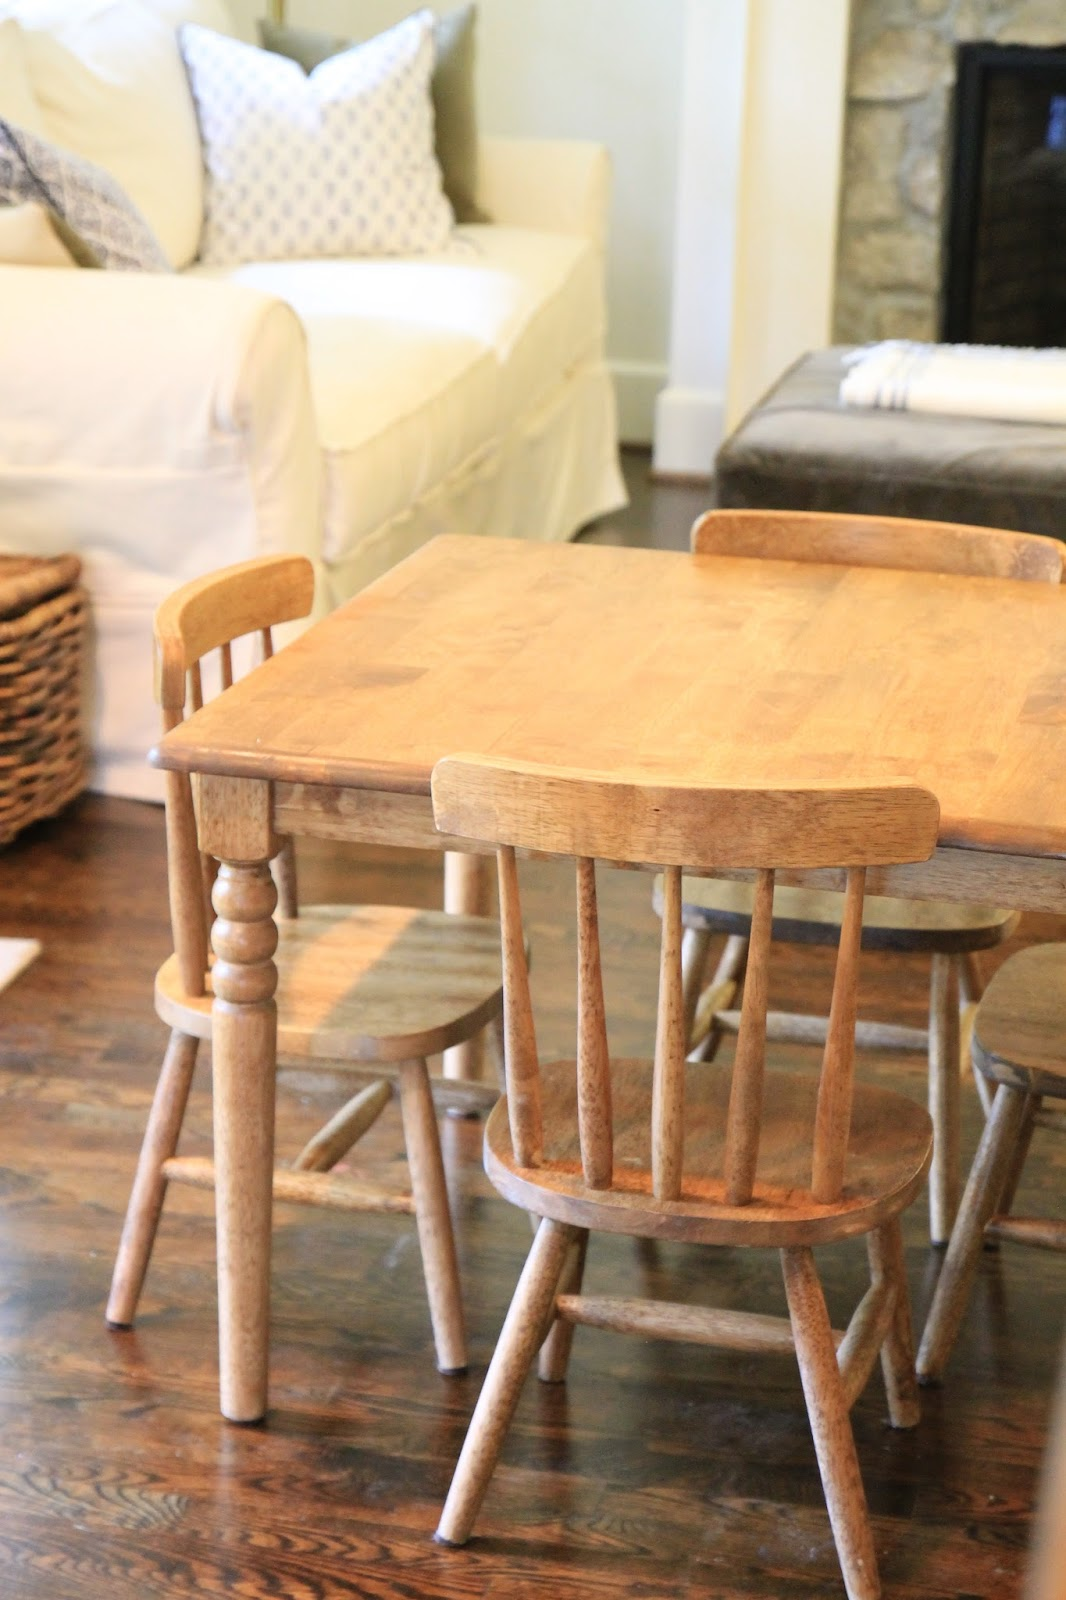 Jenny Steffens Hobick: Finishing an Unfinished Kids Table & Chairs